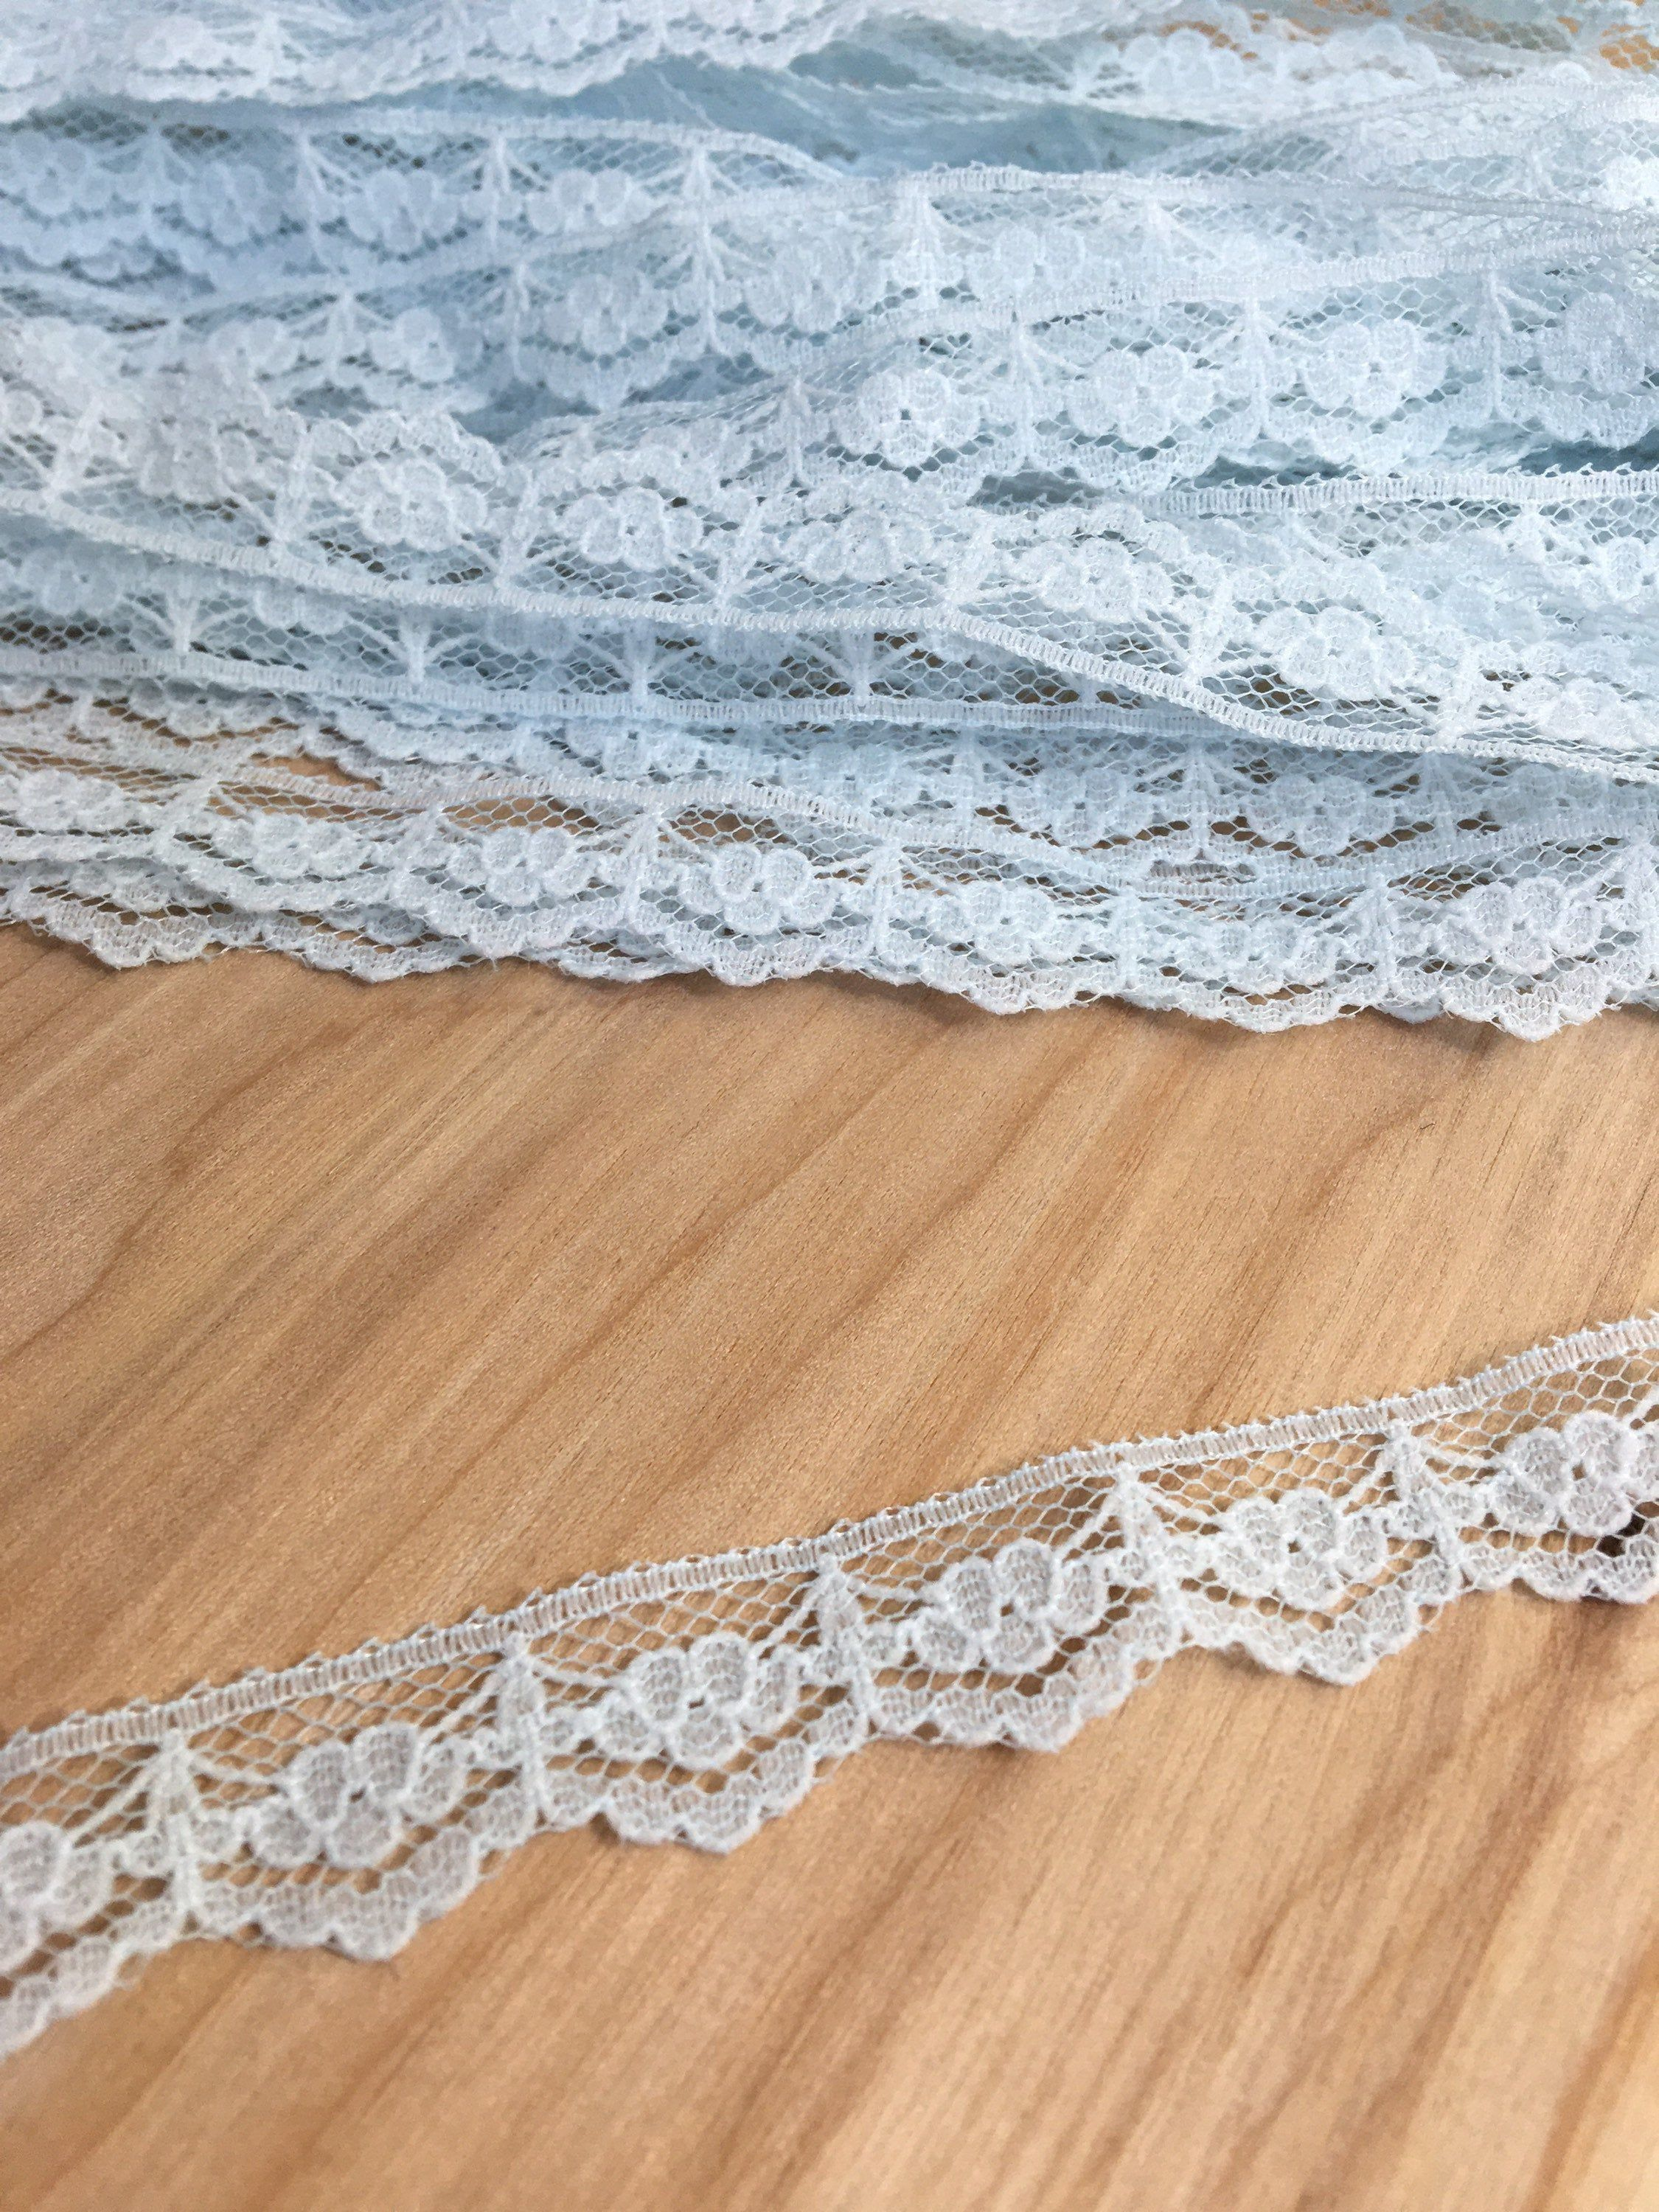 Baby Blue Vintage Lace Trim By The Yard 1 2 Inch Width Vintage